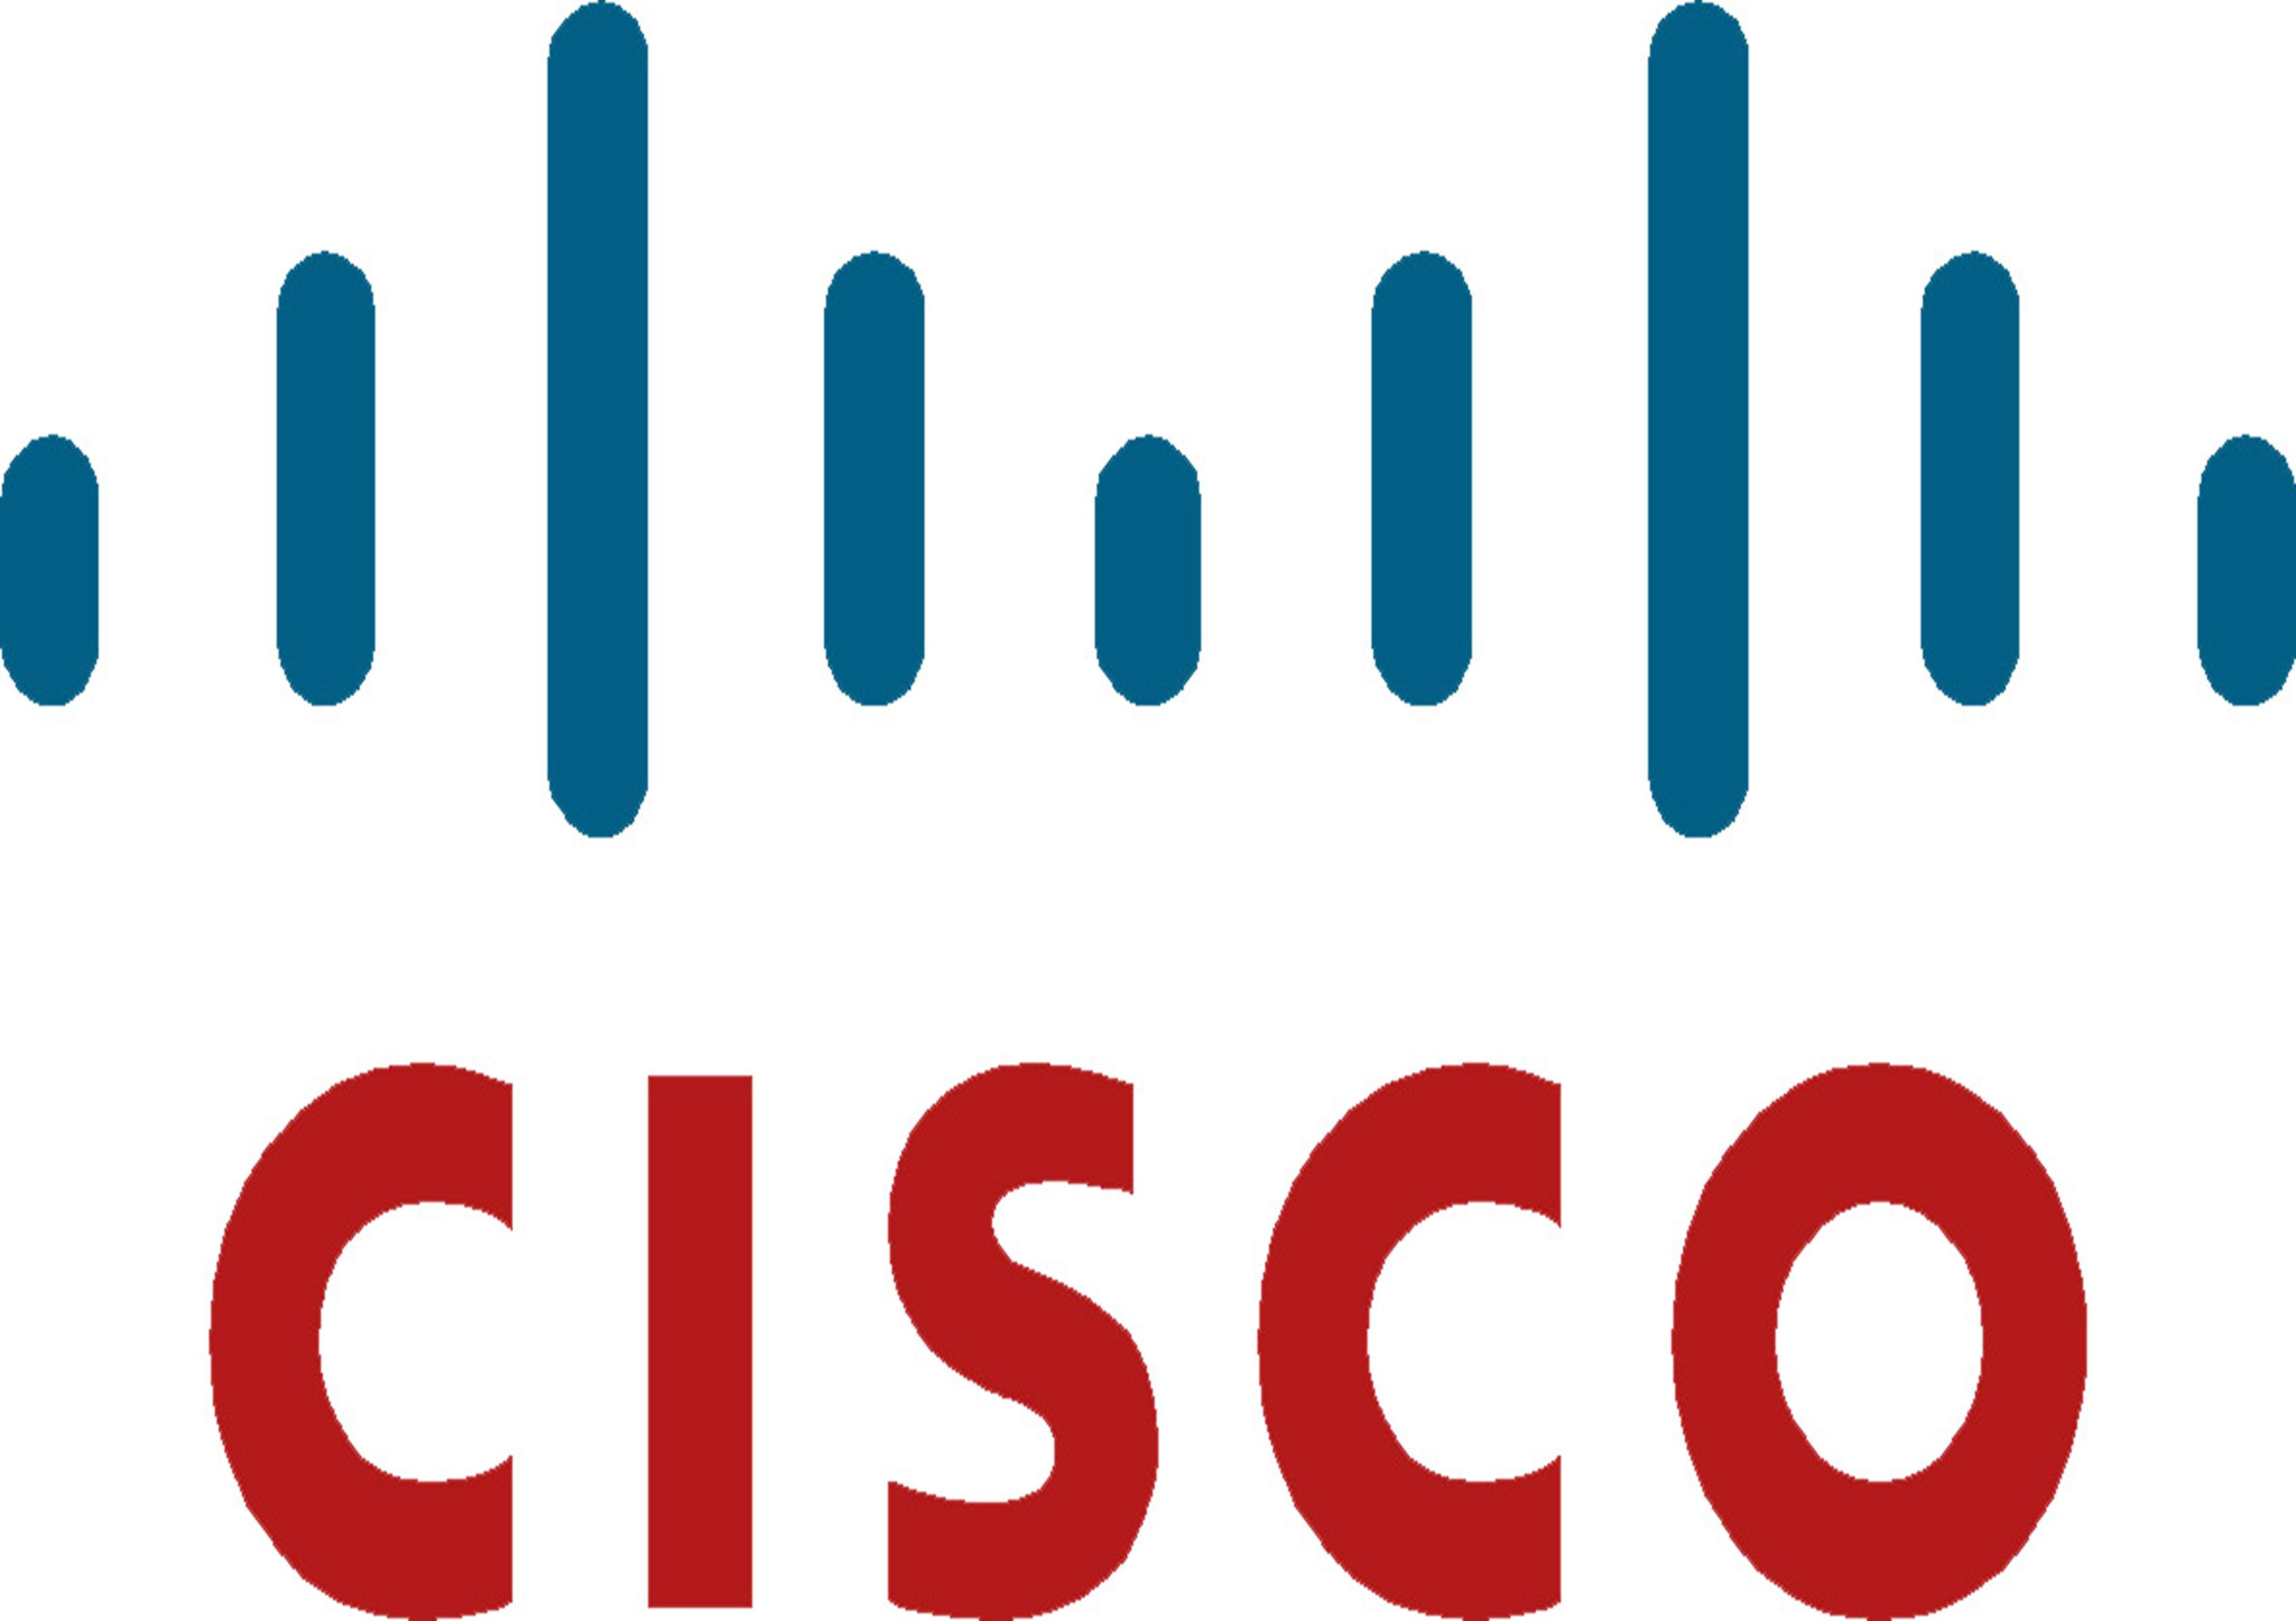 cisco business councils 2007 unifying a functional enterprise with an internal governance system Barnes group inc board of barnes enterprise system he received a presidential appointment as us representative to apec business advisory council.